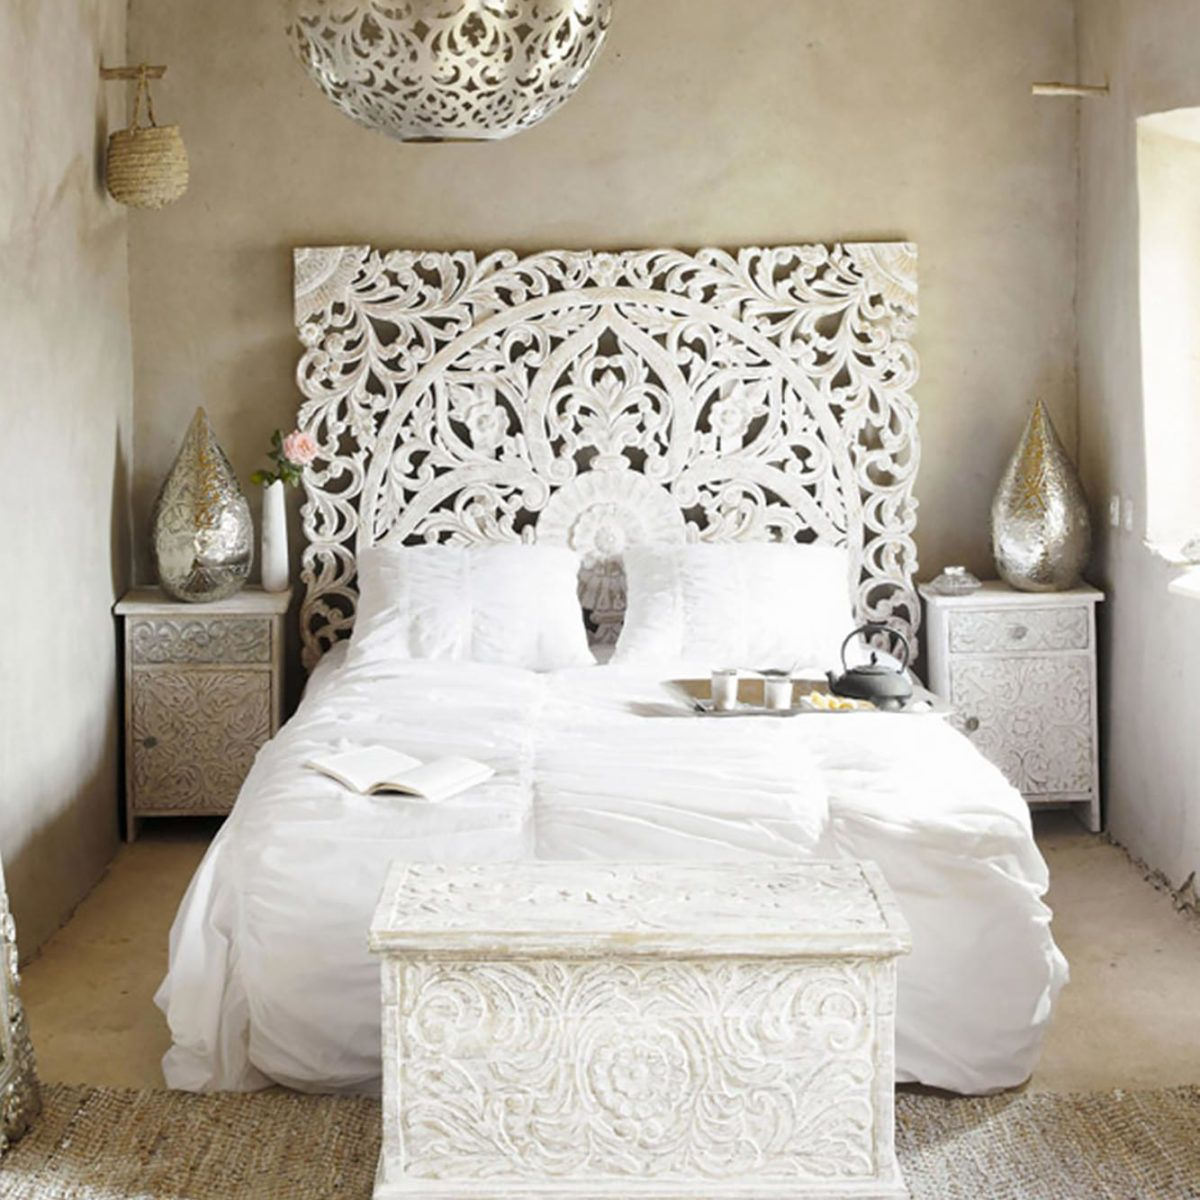 King Size Balinese Bed Headboard Wood Carving Headboards For Beds Bed Headboard Wood White Wooden Headboard